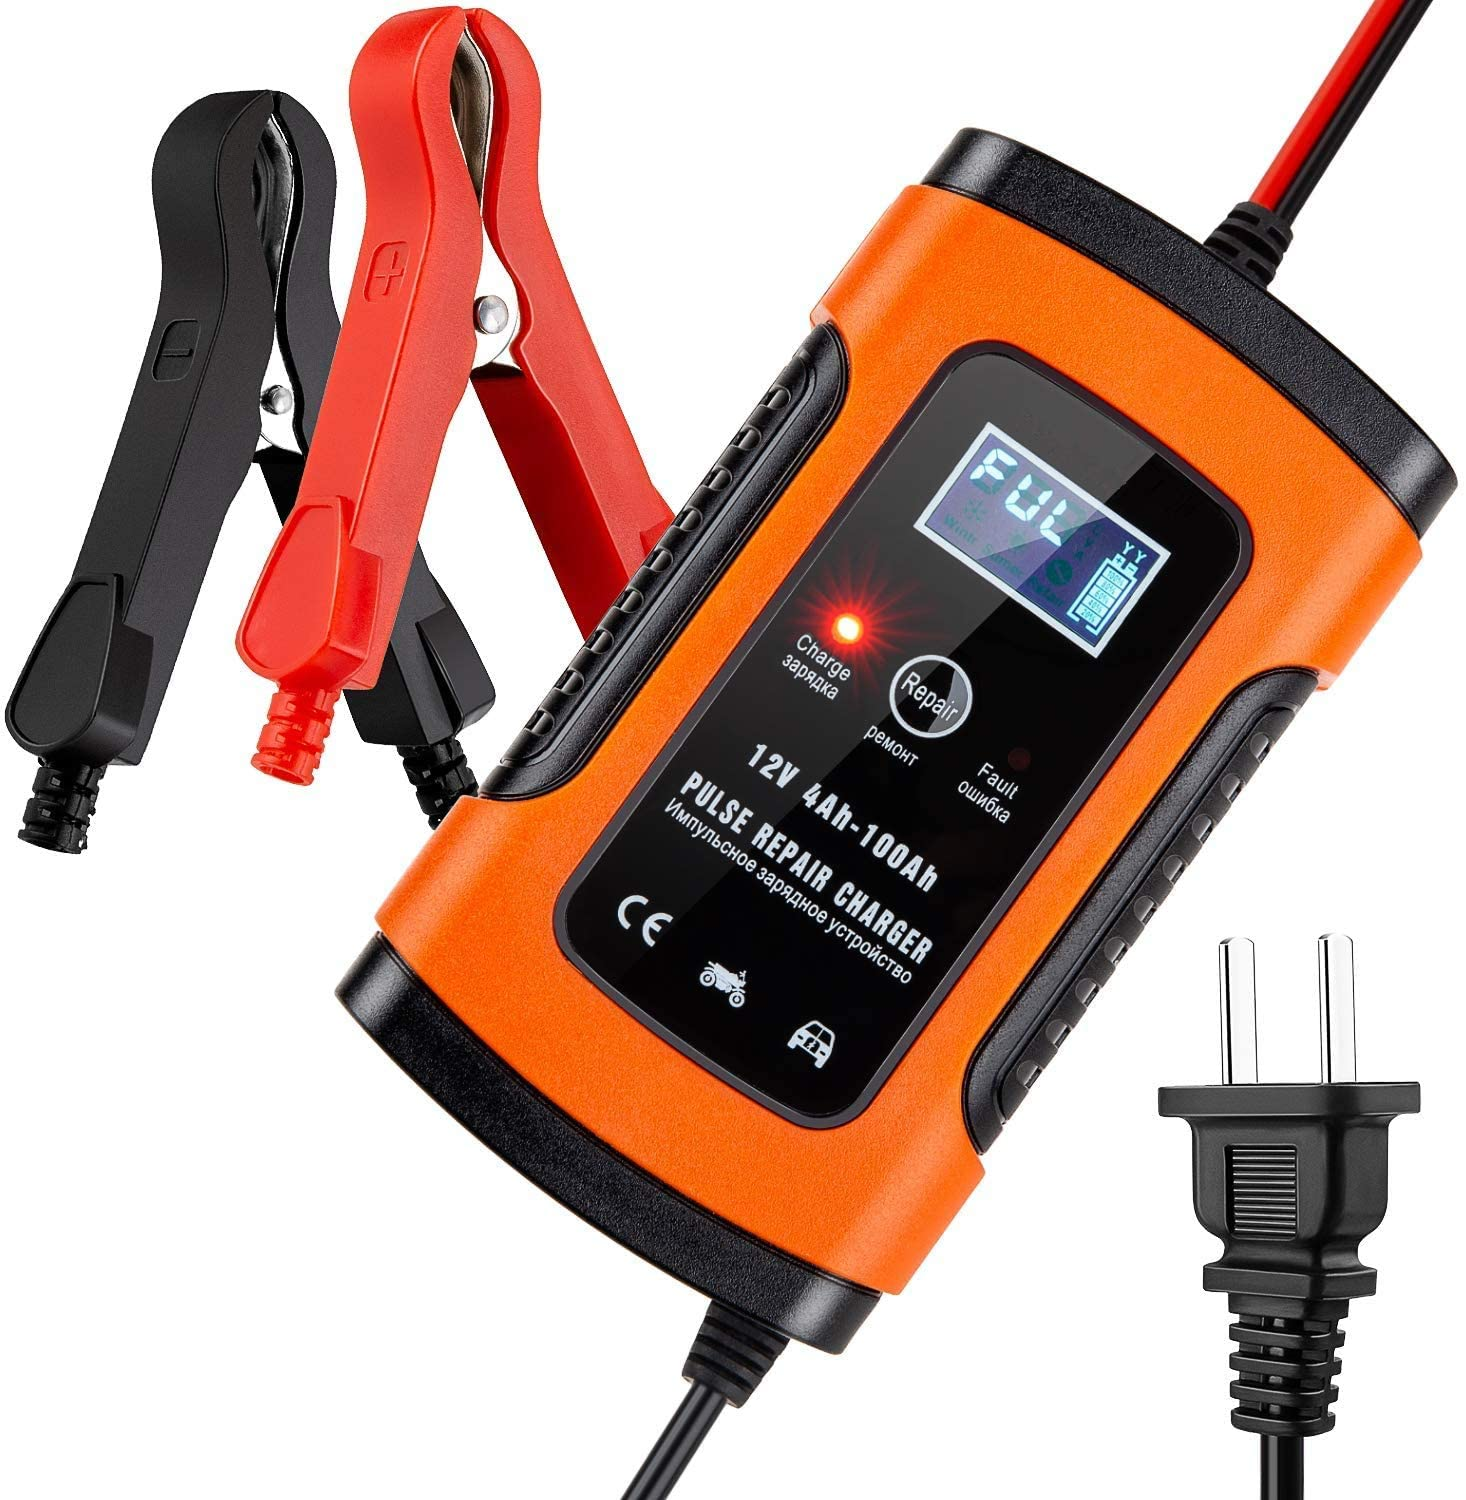 Meearo 5 Amp 12V Automotive Smart Battery Charger/Maintainer